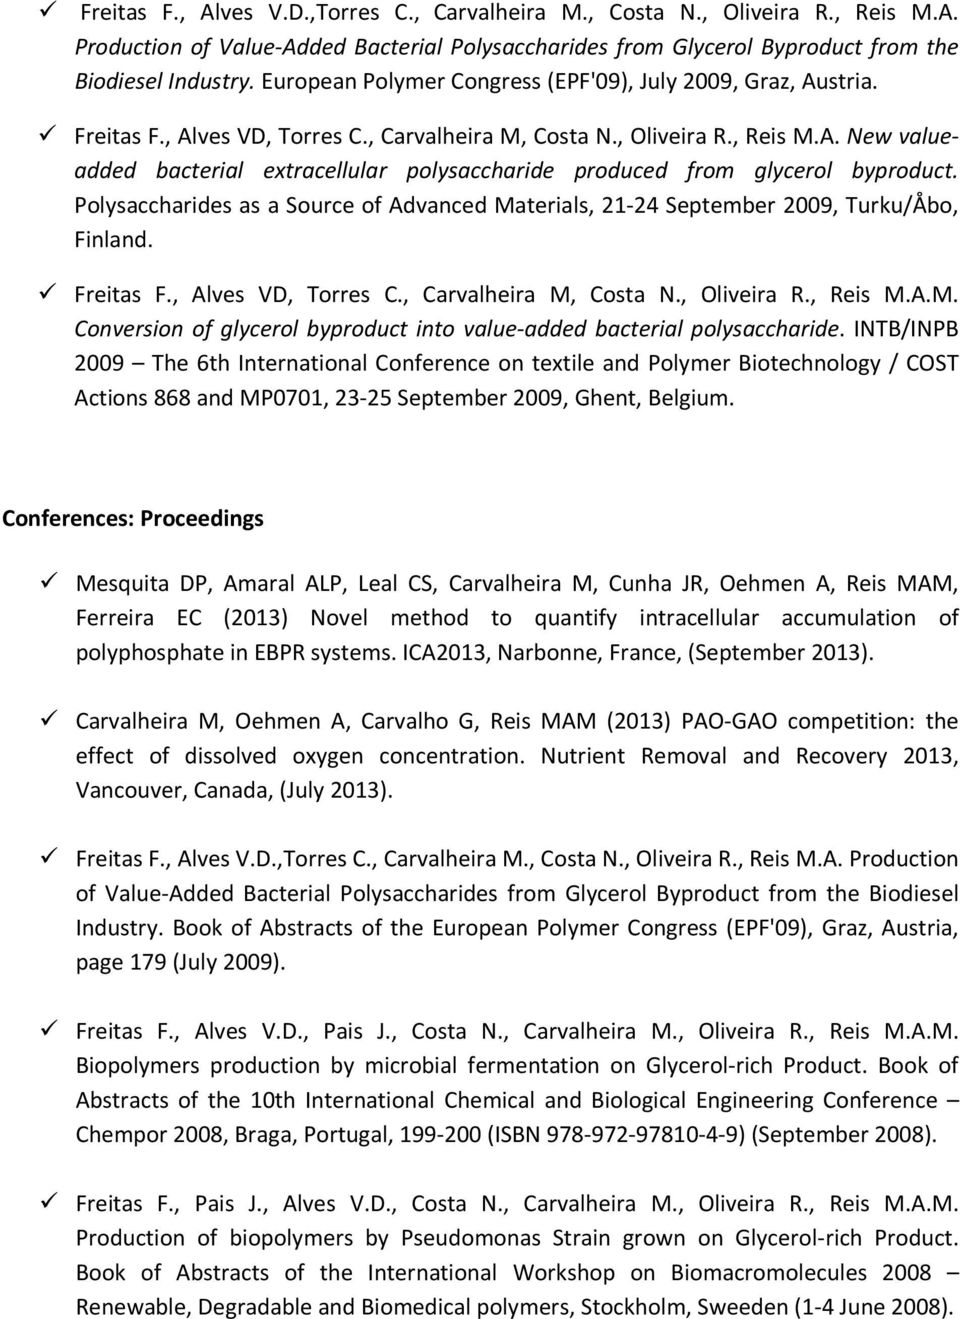 Polysaccharides as a Source of Advanced Materials, 21-24 September 2009, Turku/Åbo, Finland. Freitas F., Alves VD, Torres C., Carvalheira M, Costa N., Oliveira R., Reis M.A.M. Conversion of glycerol byproduct into value-added bacterial polysaccharide.